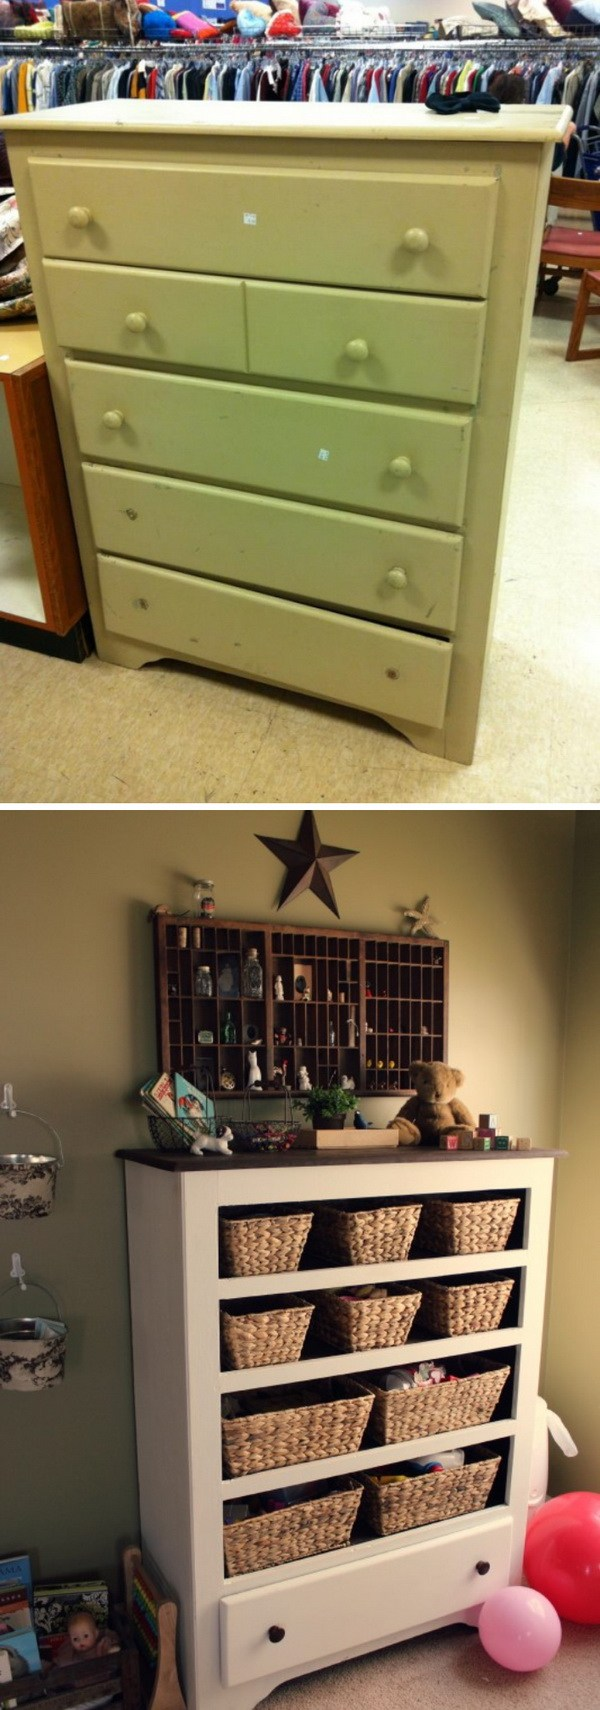 Turn an old dresse into a functional storage in your entryway.